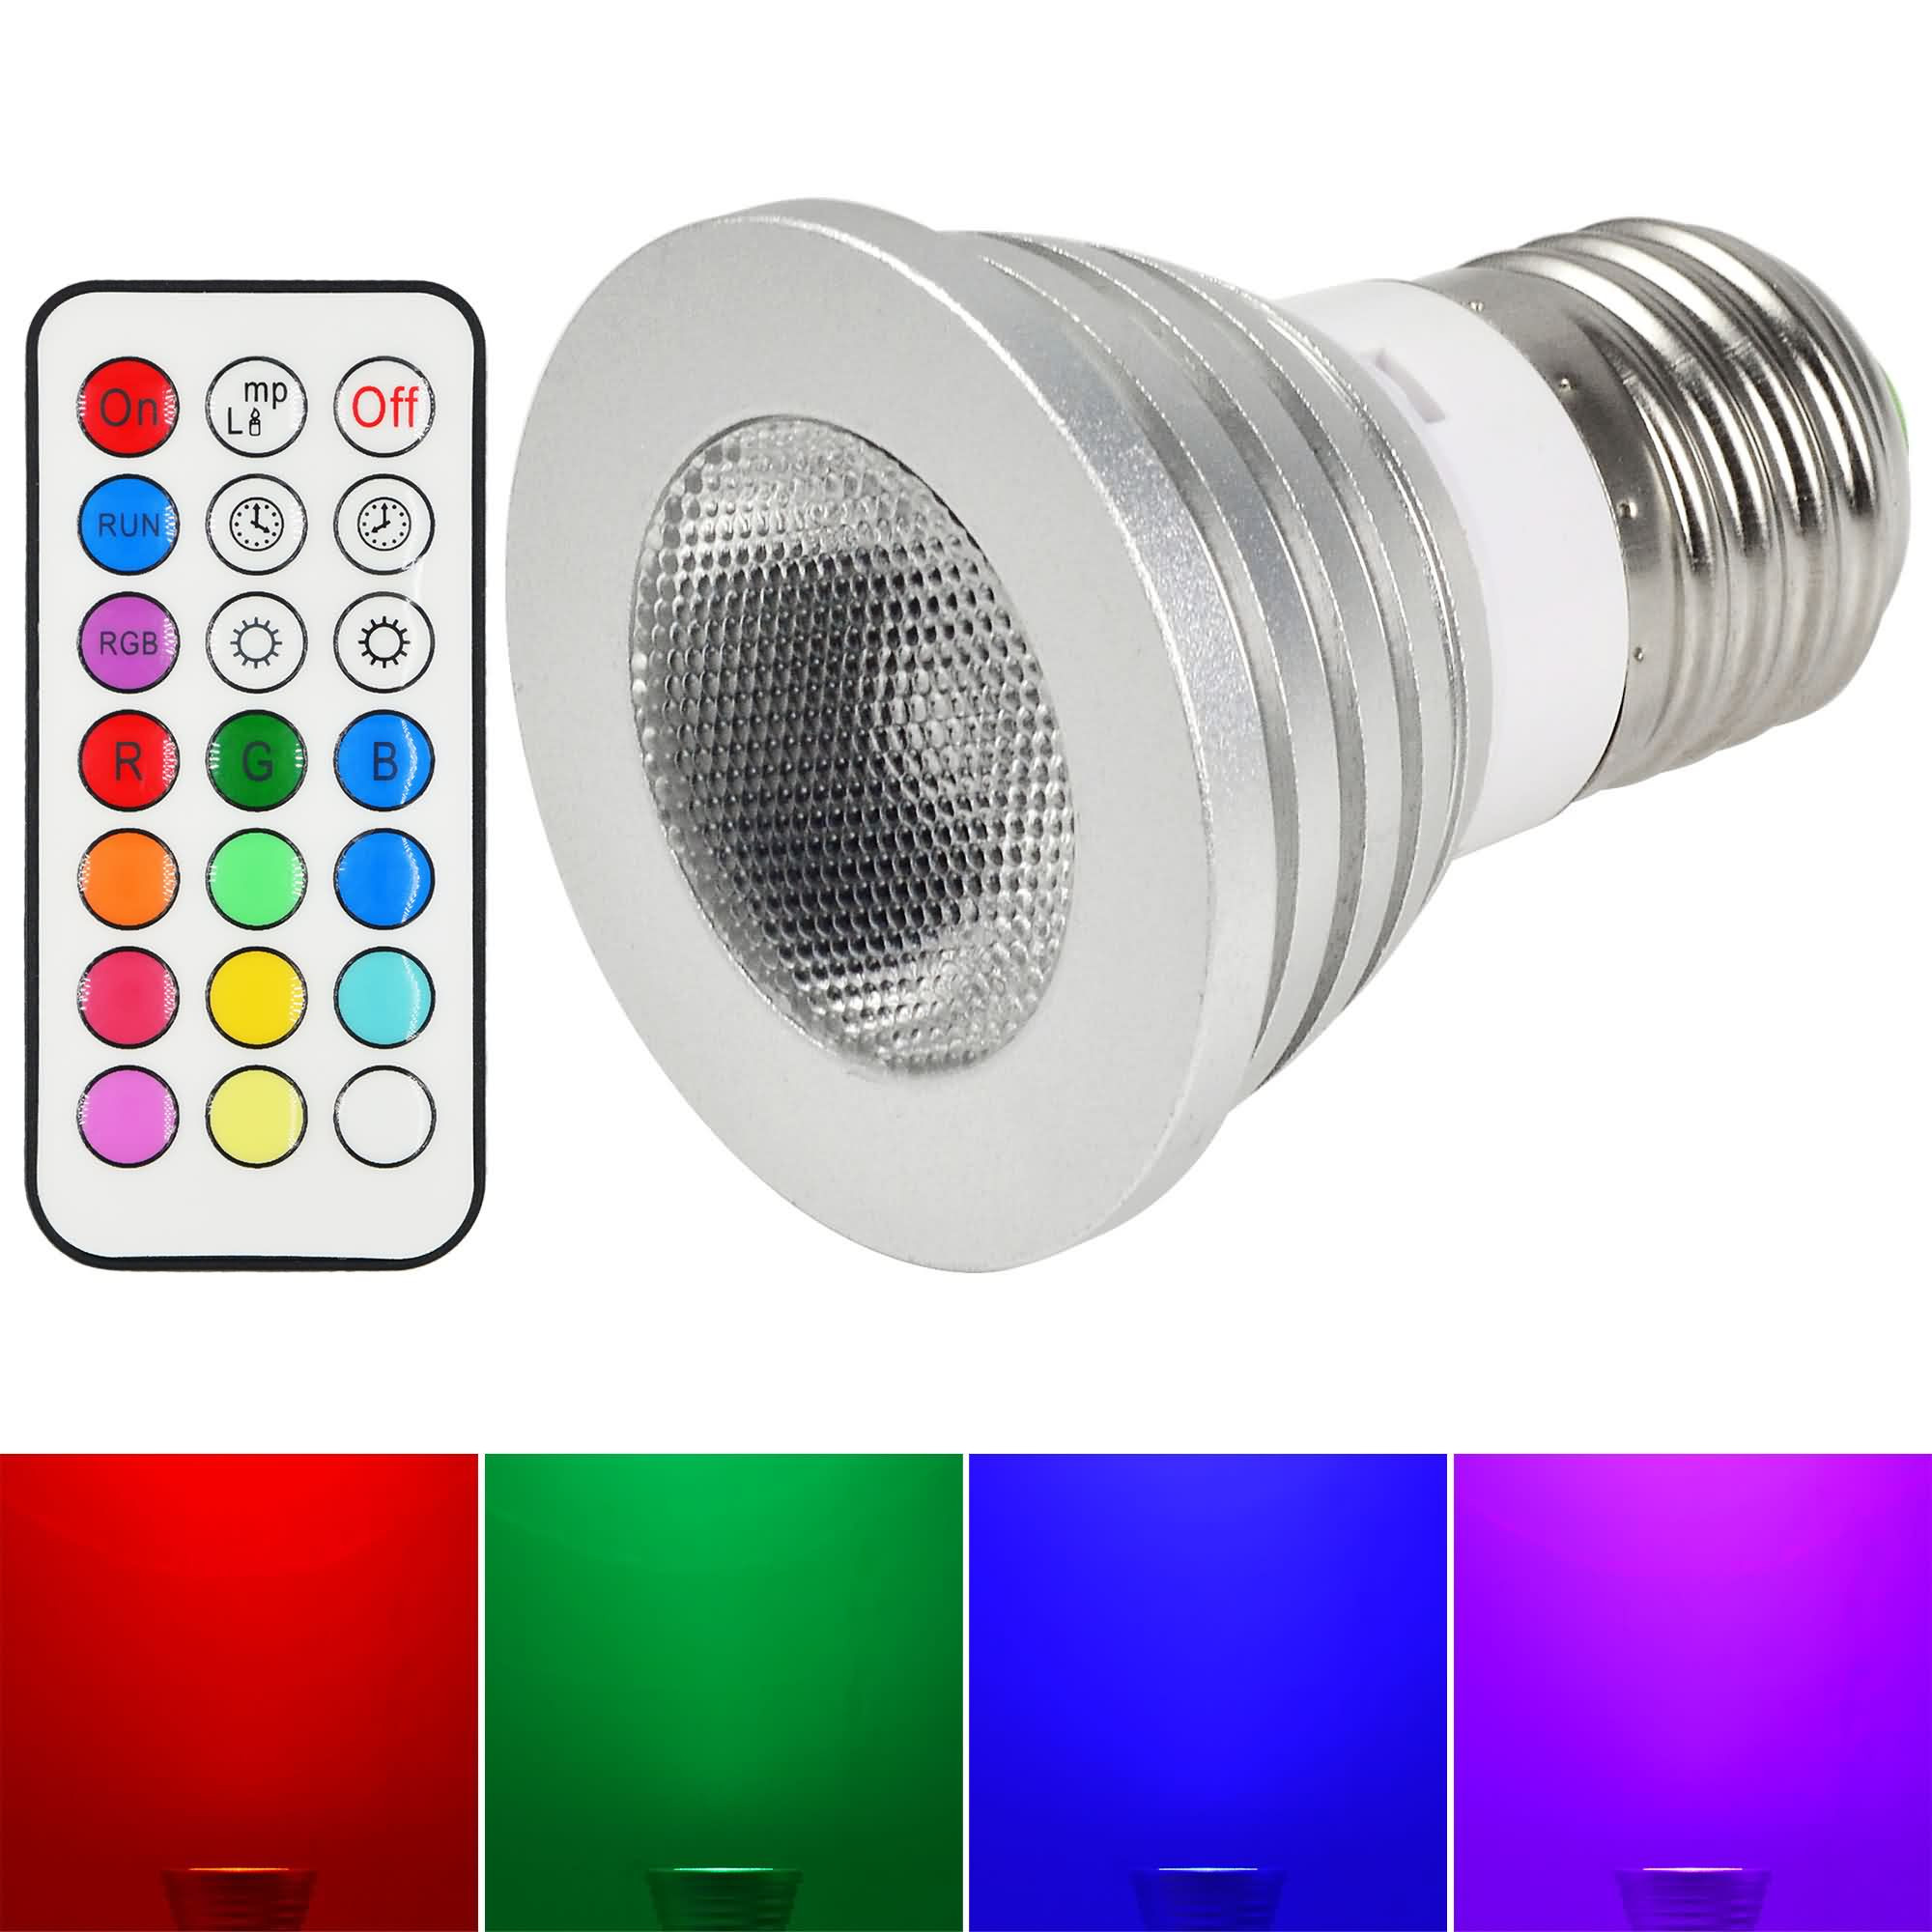 MENGS® E27 4W LED RGB Light 16 Colour changing SMD LEDs LED Spotlight lamp Bulb with IR Remote Control - multicolor Dimmable